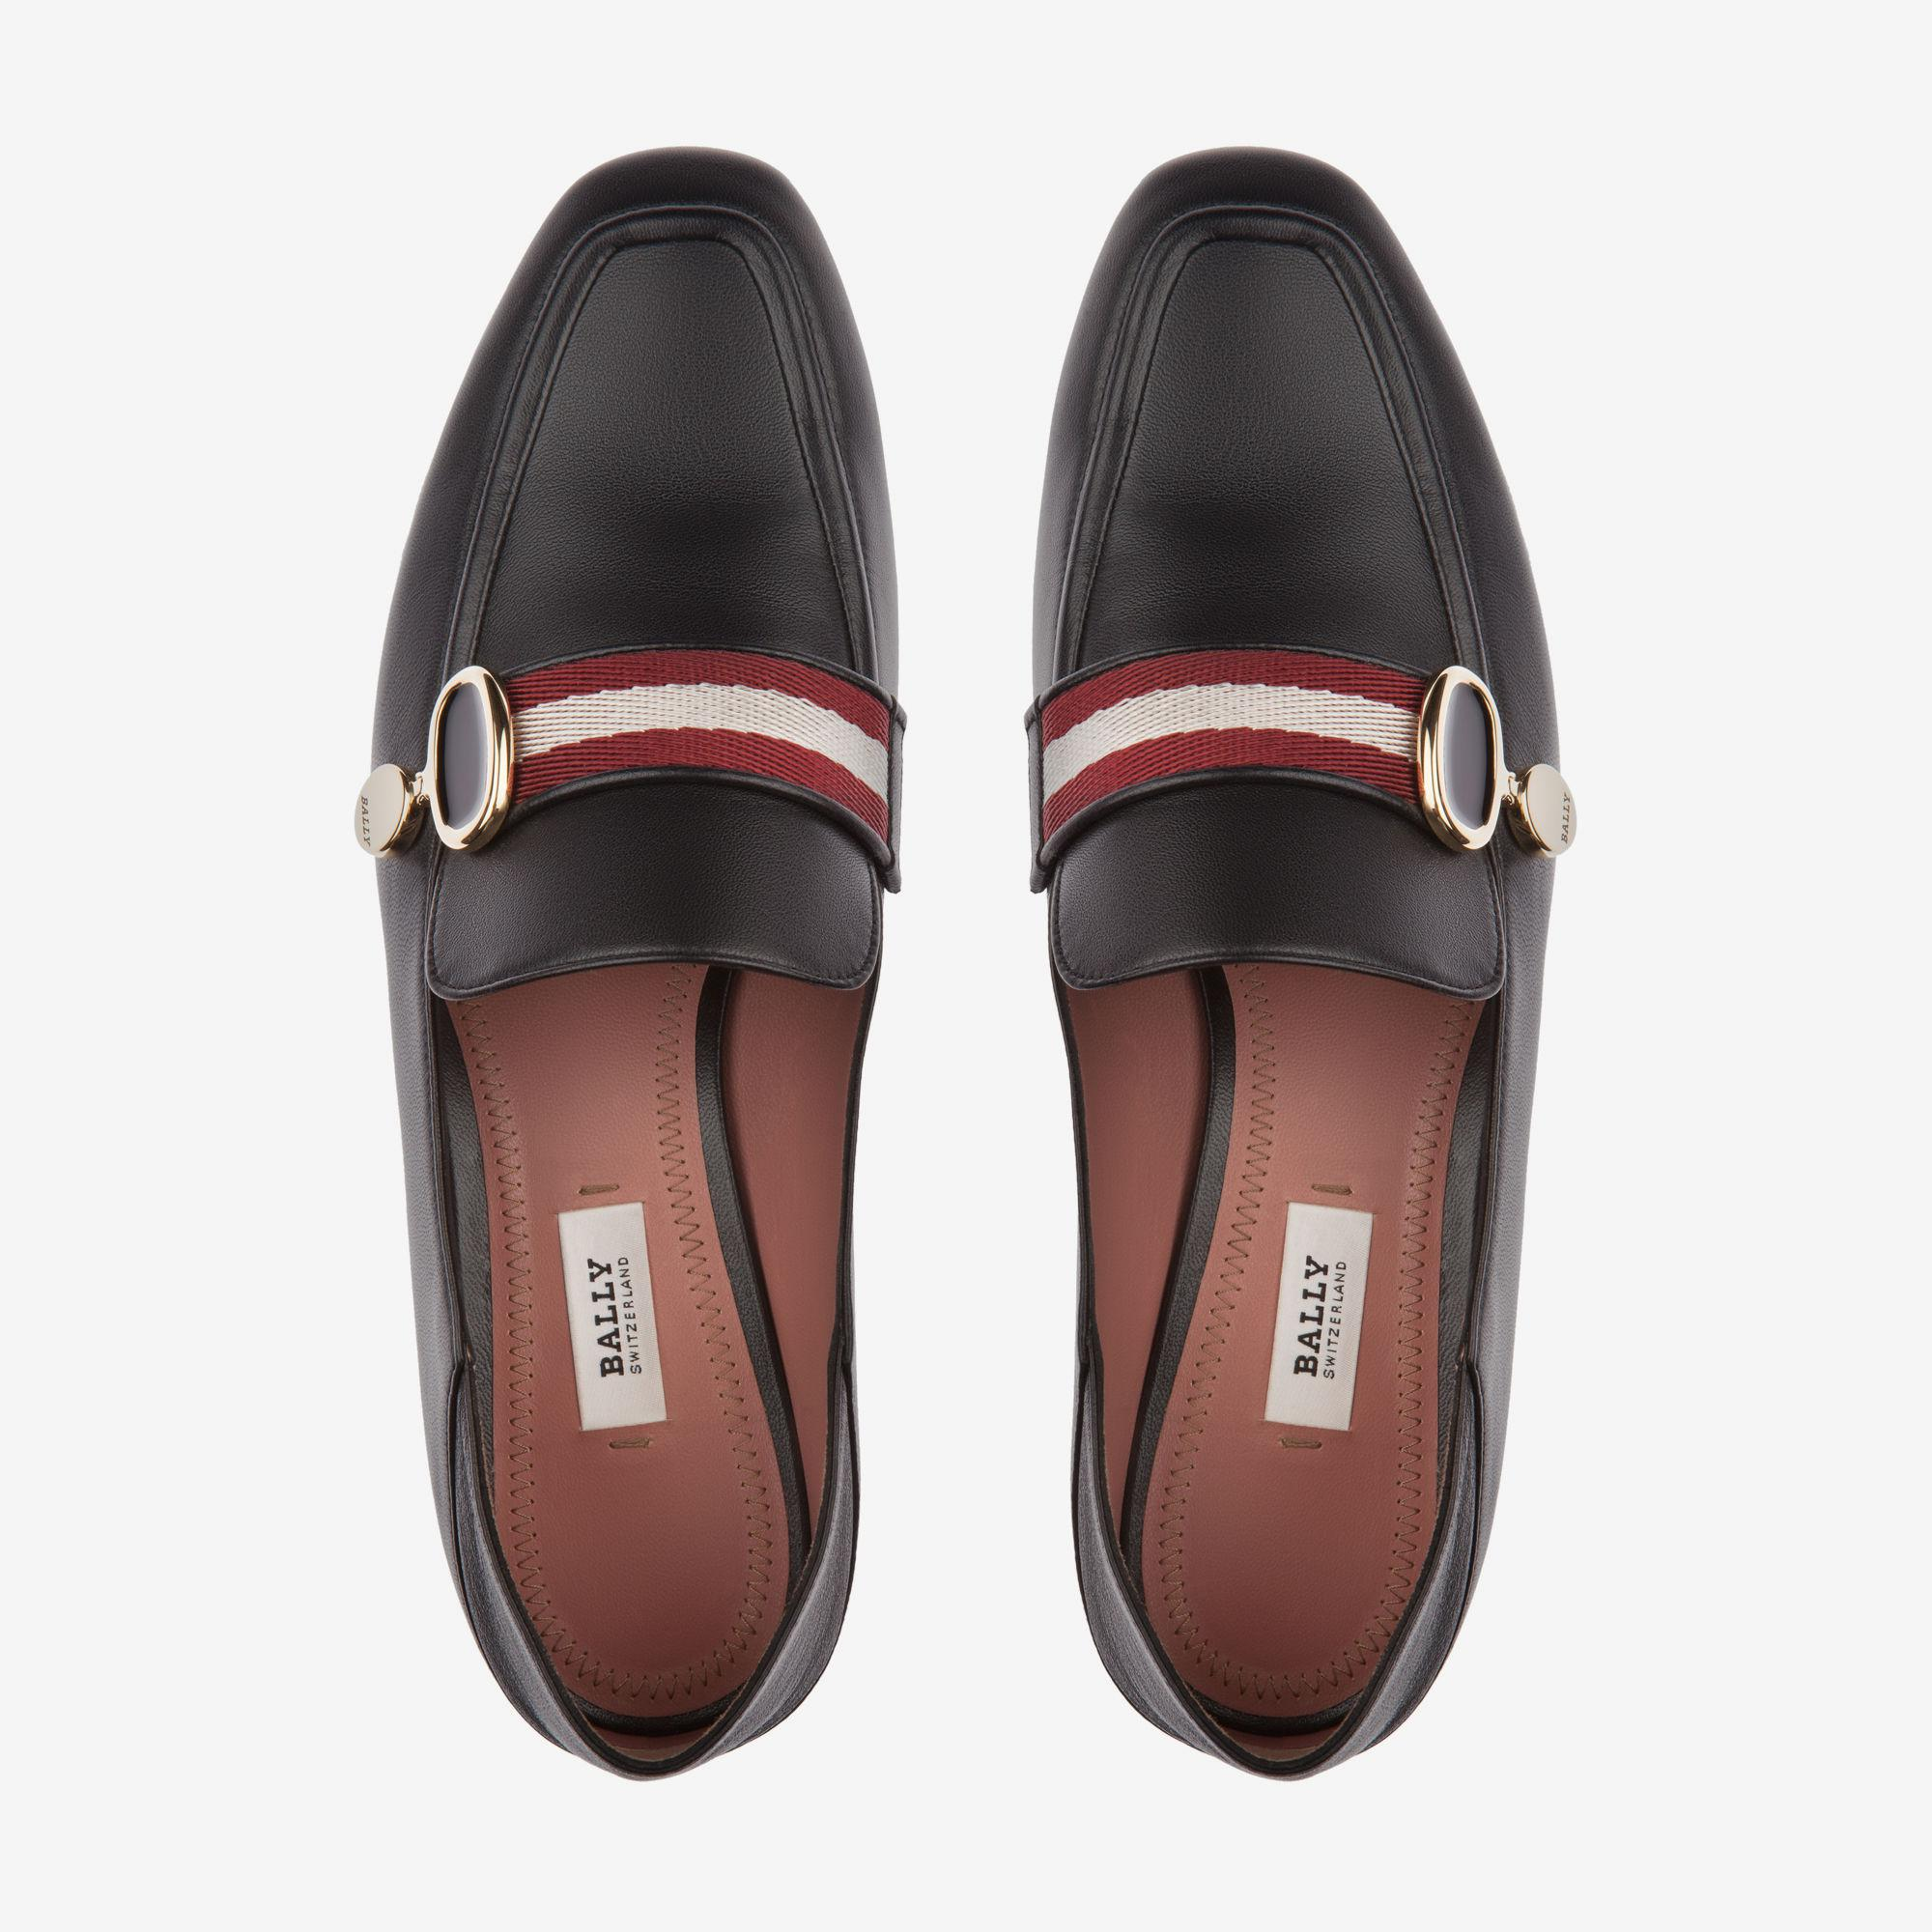 New Style The Cheapest Bally Livilla loafers Outlet Pay With Visa Big Sale lpgWIiY